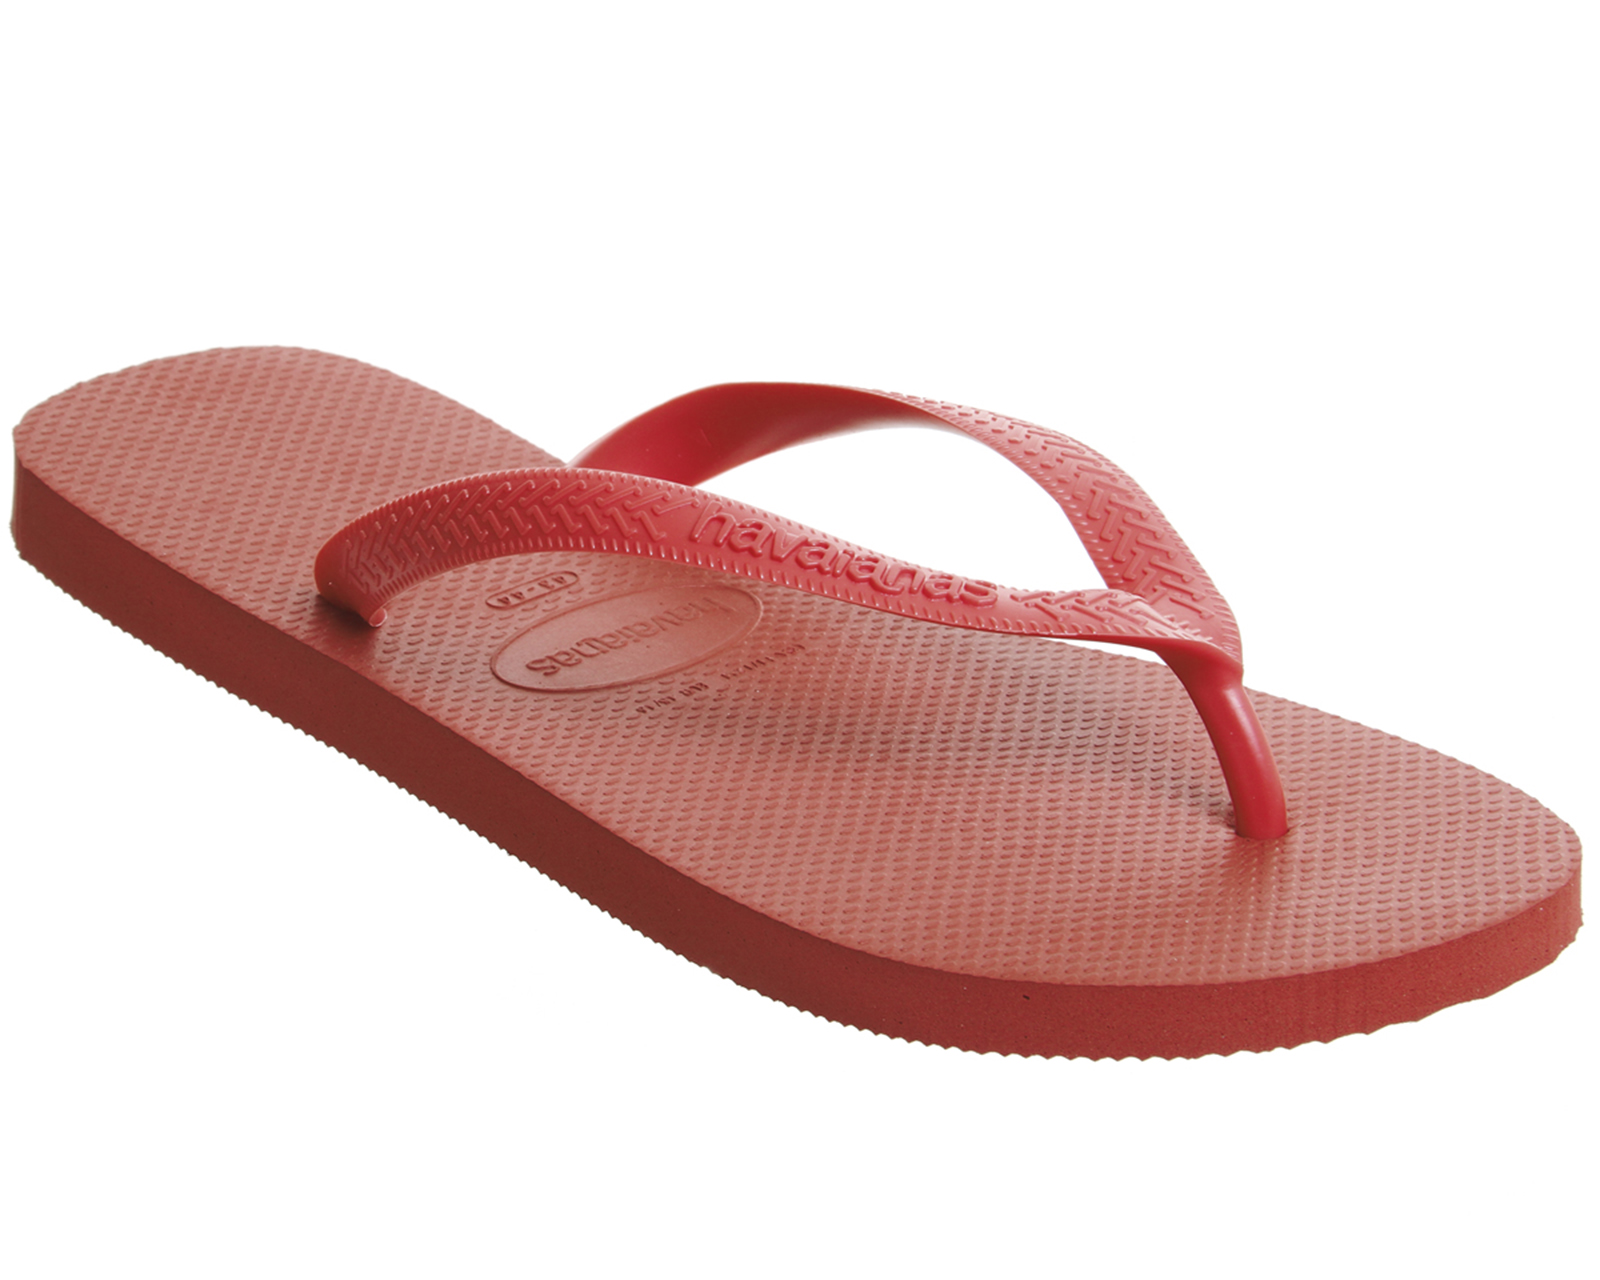 2274e823a Sentinel Mens Havaianas Top Flip Flops Ruby Red Sandals